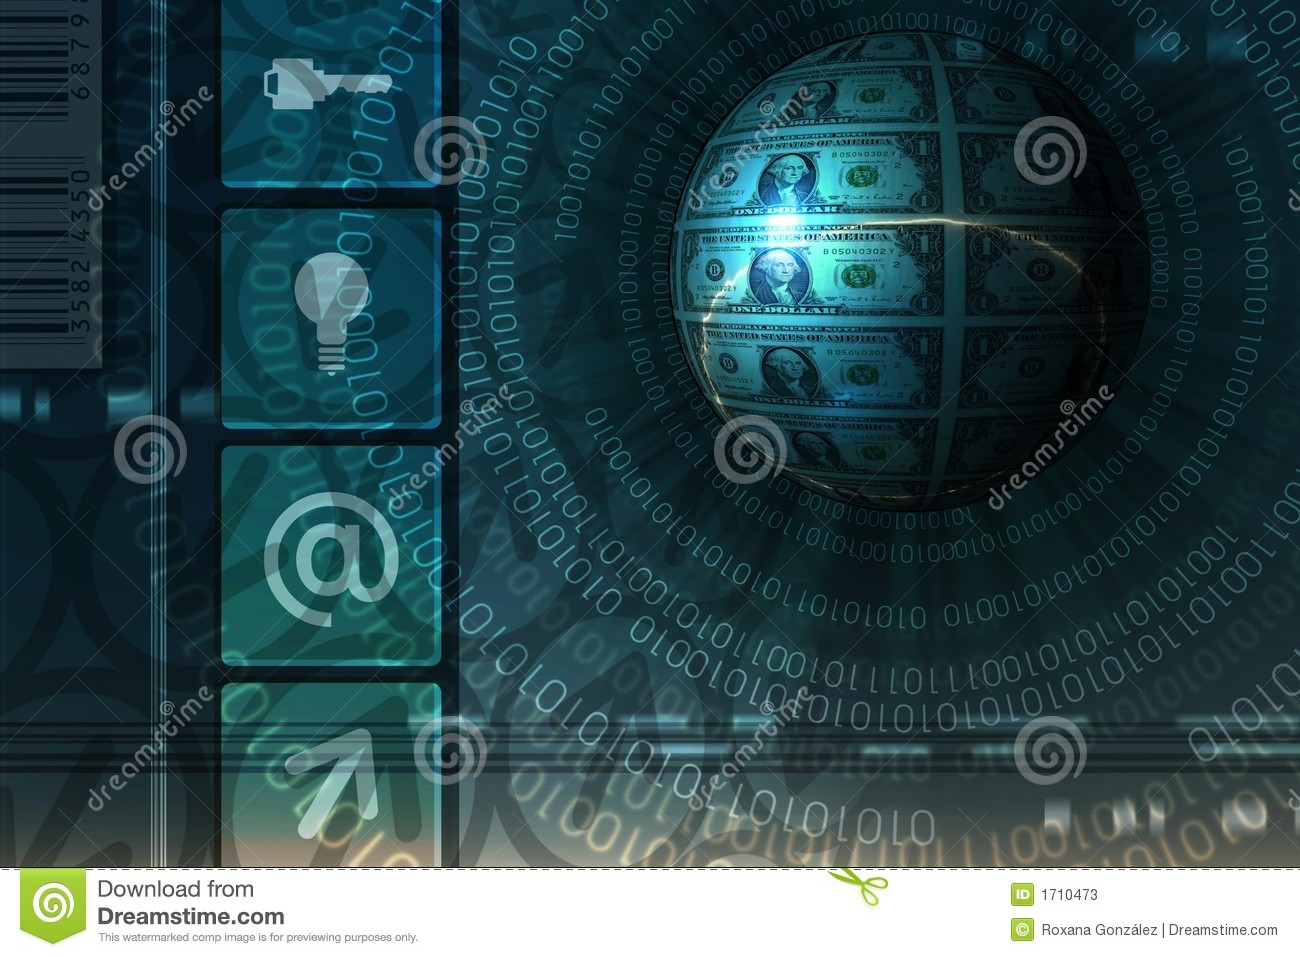 E commerce background images - Abstract Background Binary Commerce